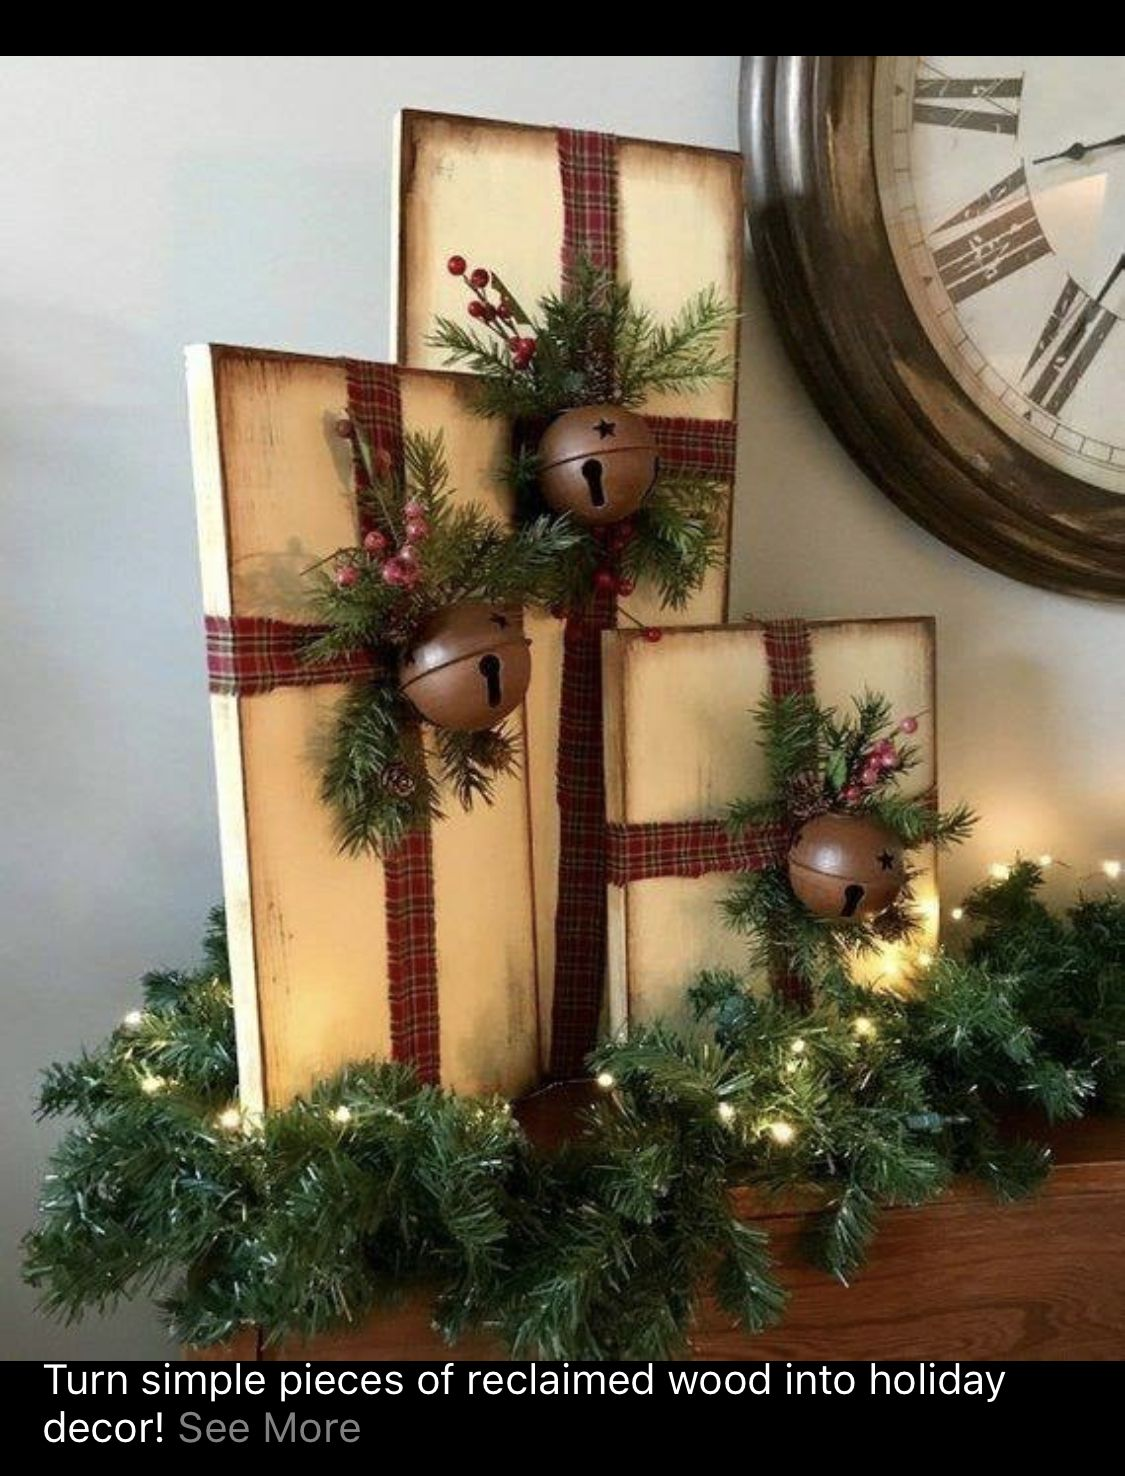 Old window ideas for outside  pin by lynn franklin on holiday deco ideas  pinterest